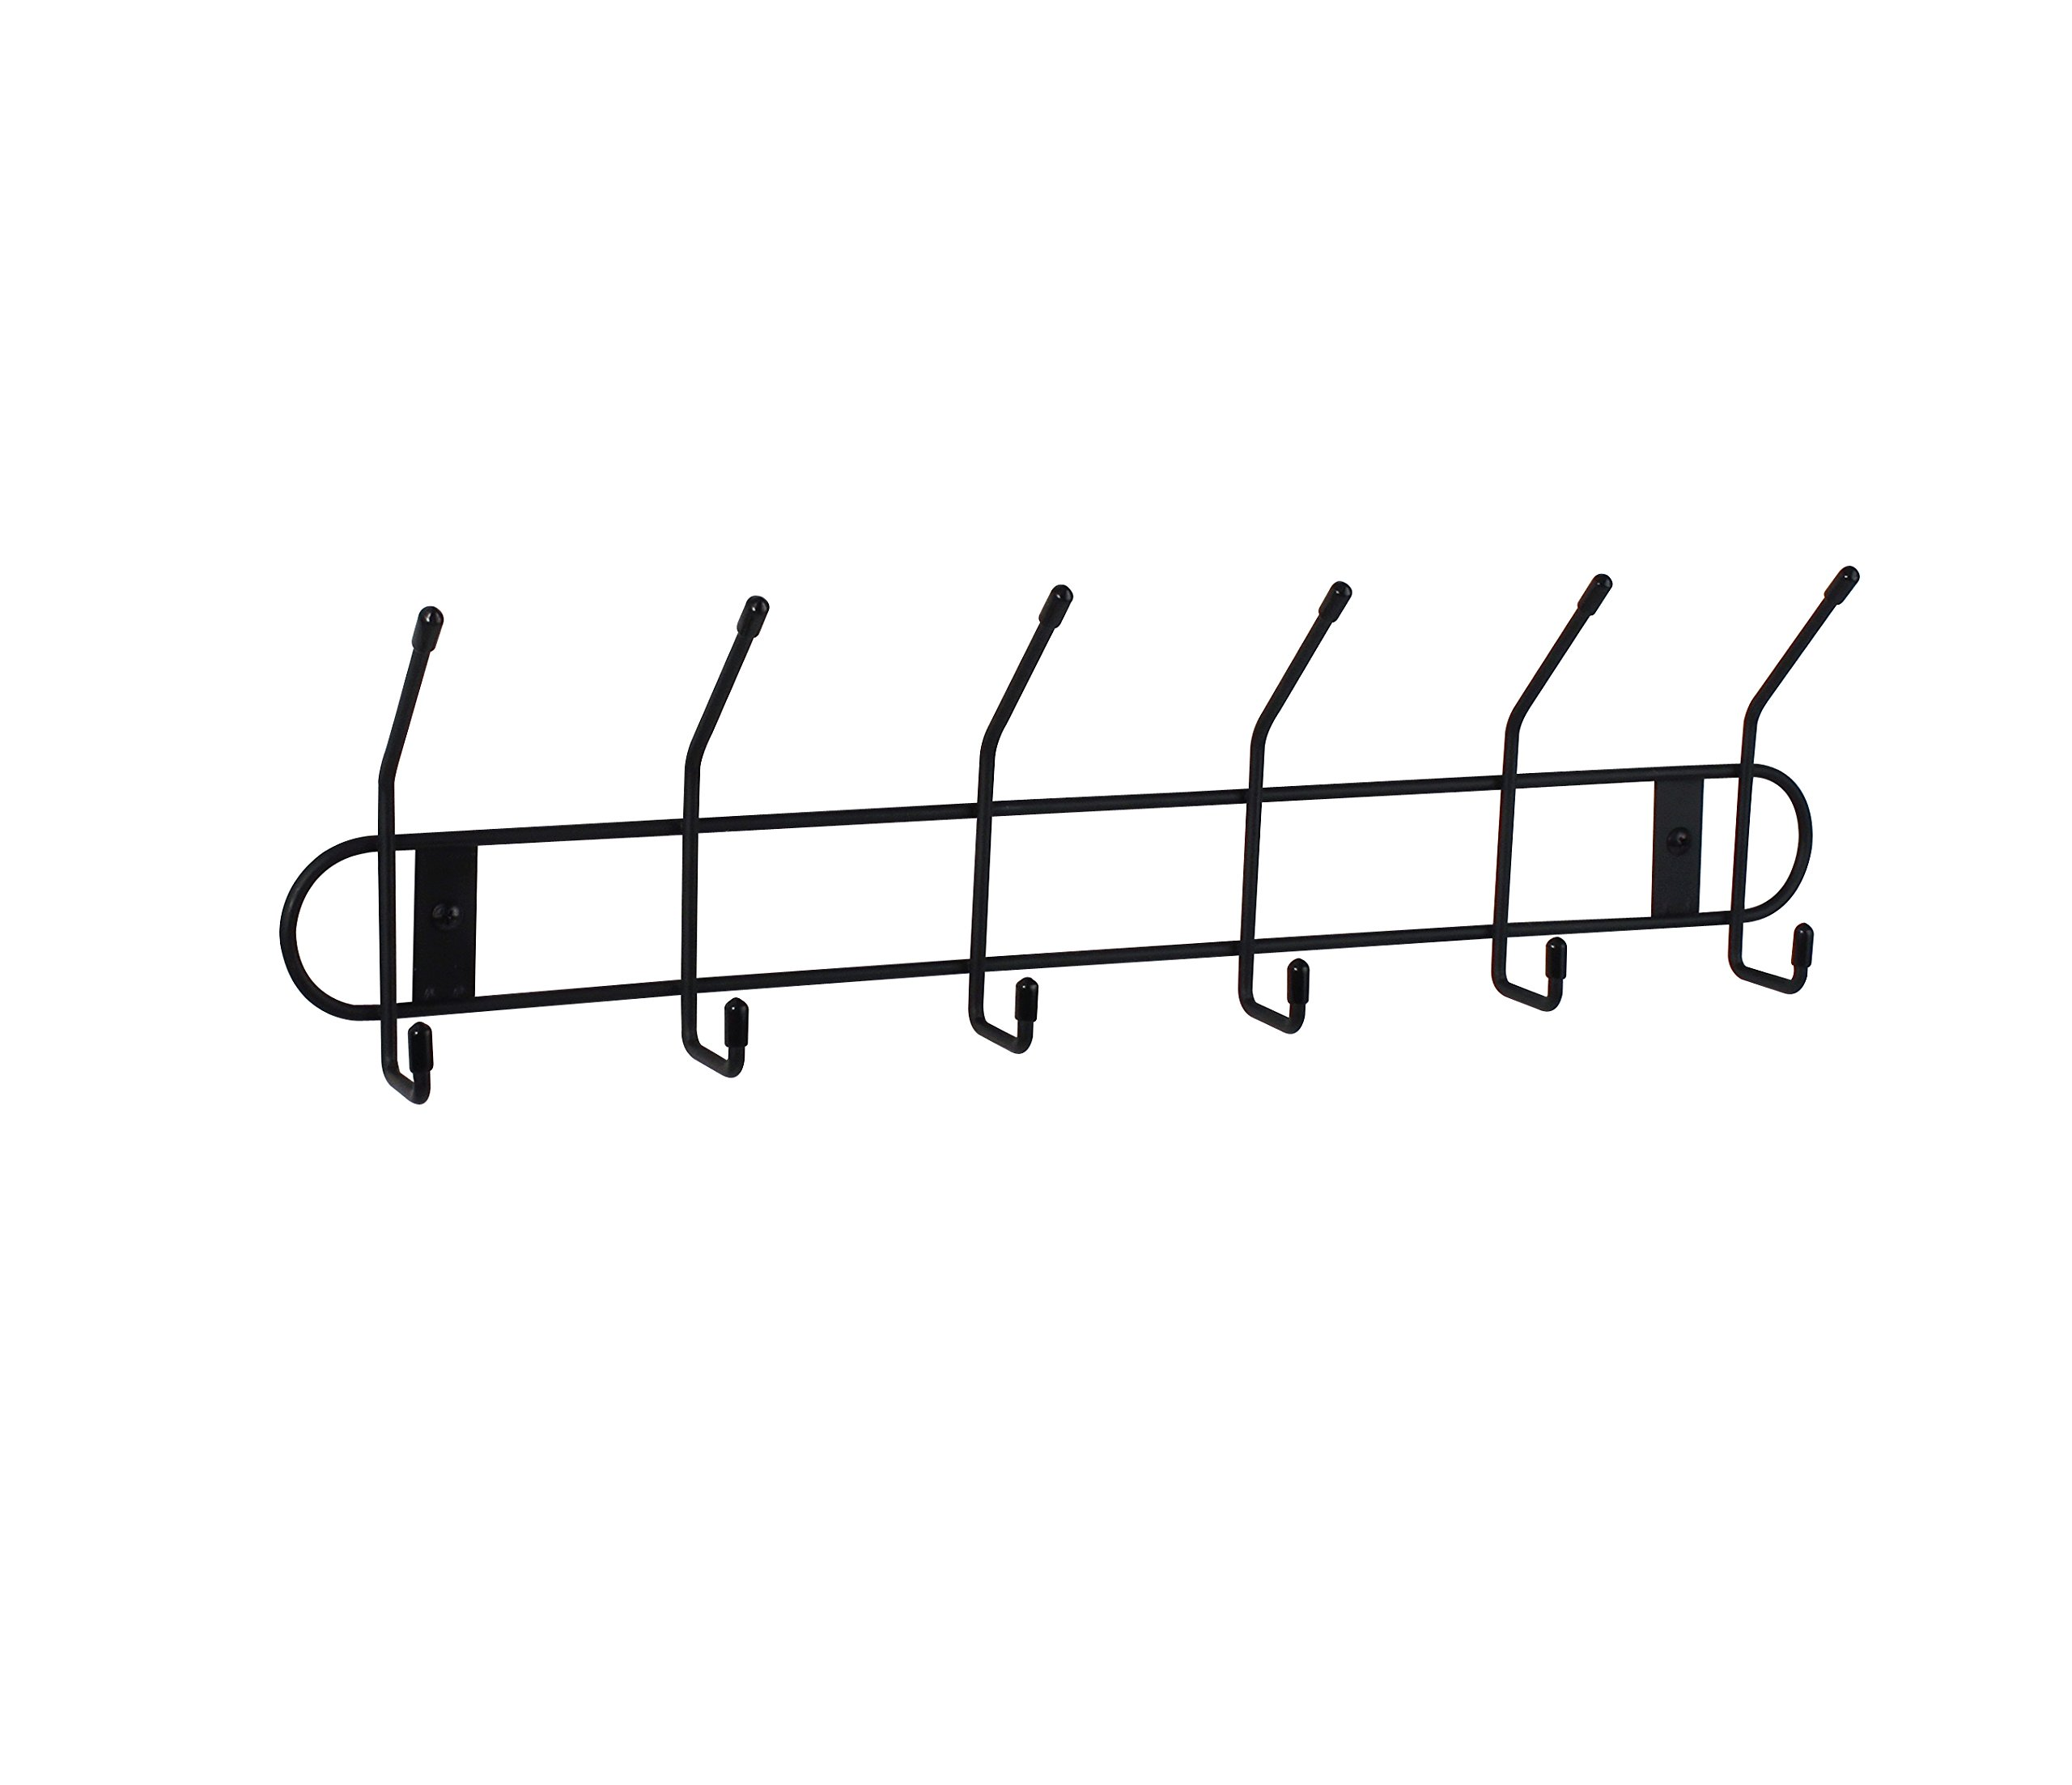 Spectrum Diversified Wall Hook Rack, 6 Hook, Black - Hang and store your hats, coats, purses and more Great for storing garage items such as hoses, extension cords, shovels and rakes Sturdy steel construction - entryway-furniture-decor, entryway-laundry-room, coat-racks - 71uIWUAWz%2BL -